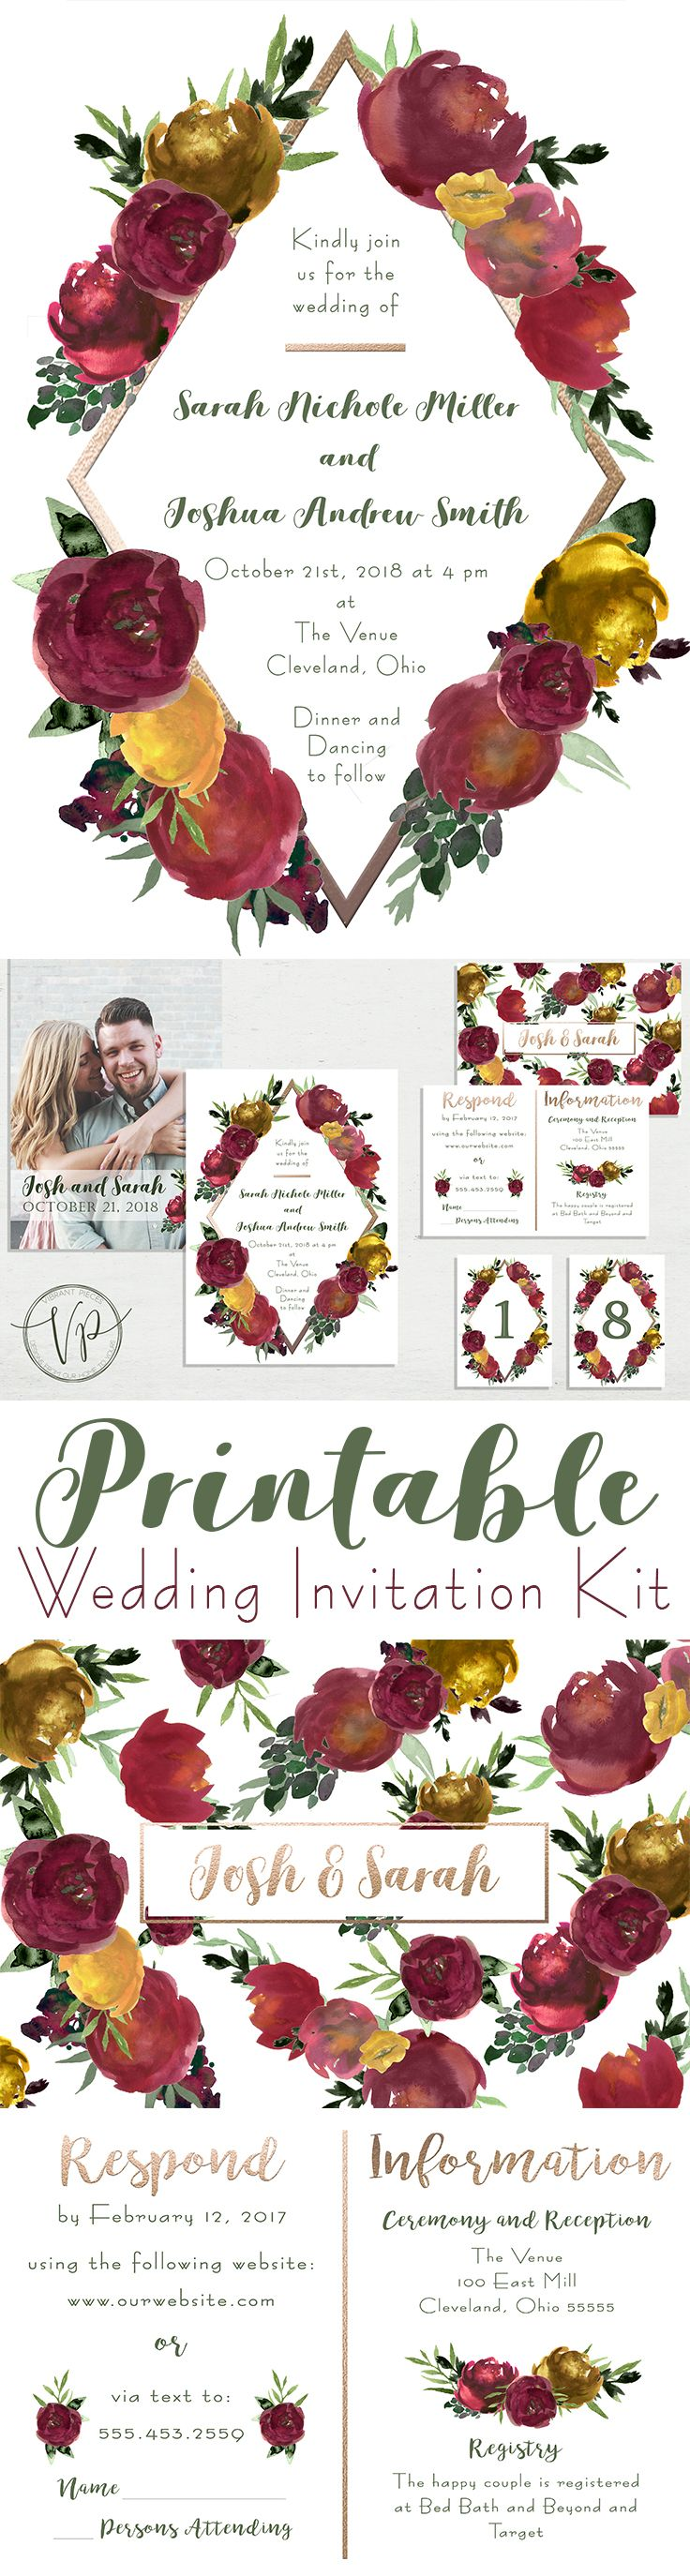 Wedding decorations rose gold october 2018 Fall Watercolor Floral u Rose Gold Wedding Invite Kit wRSVP Cards